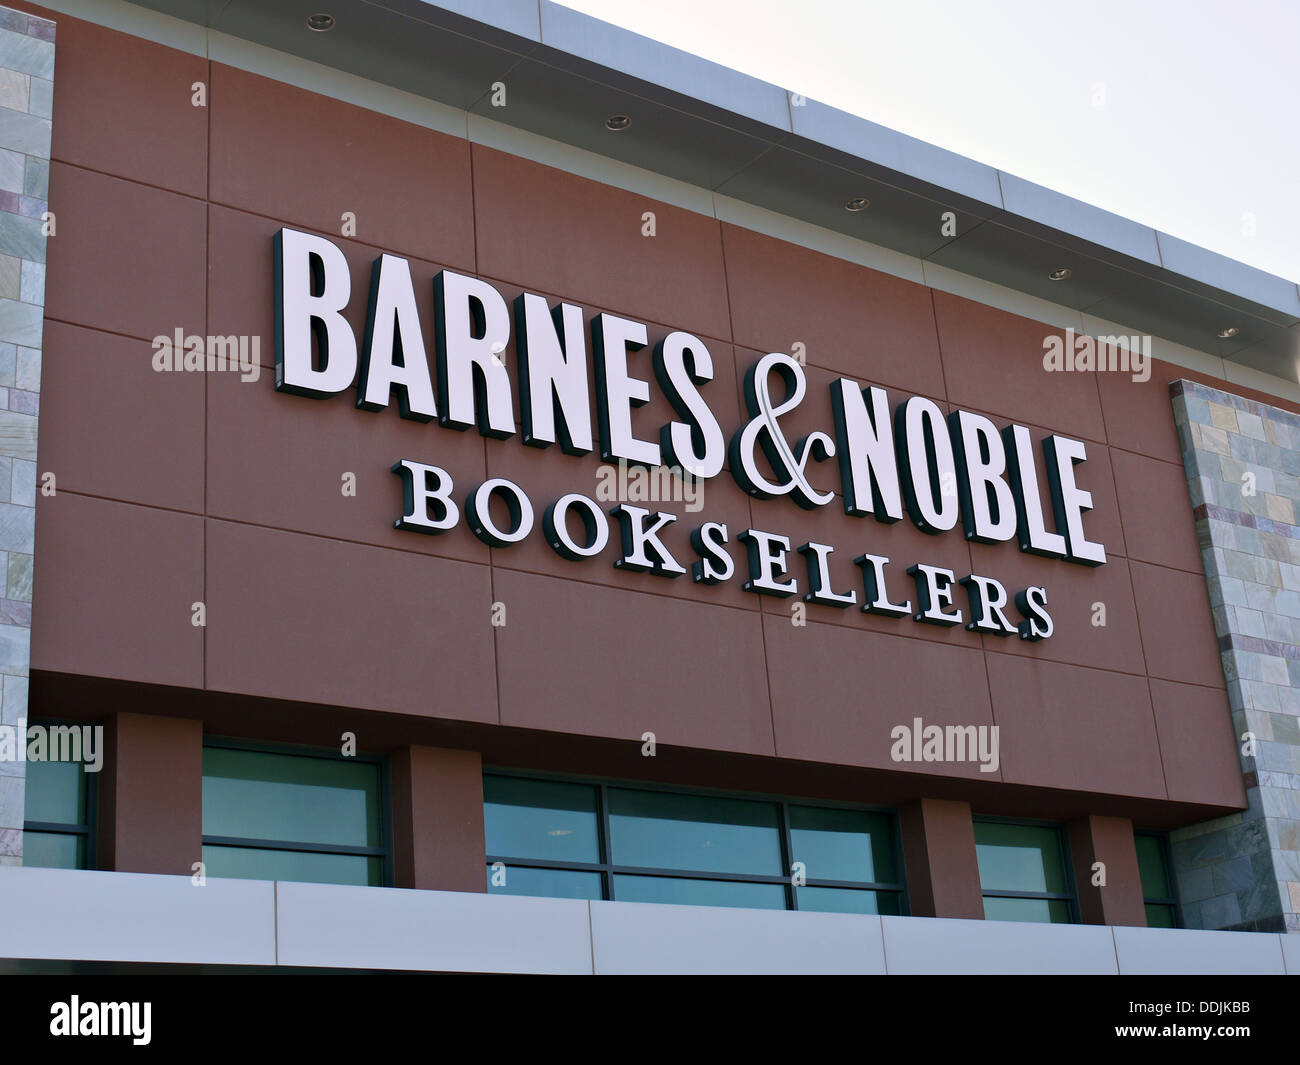 A Barnes and Nobles Book Sellers store sign in Arlington Texas. - Stock Image